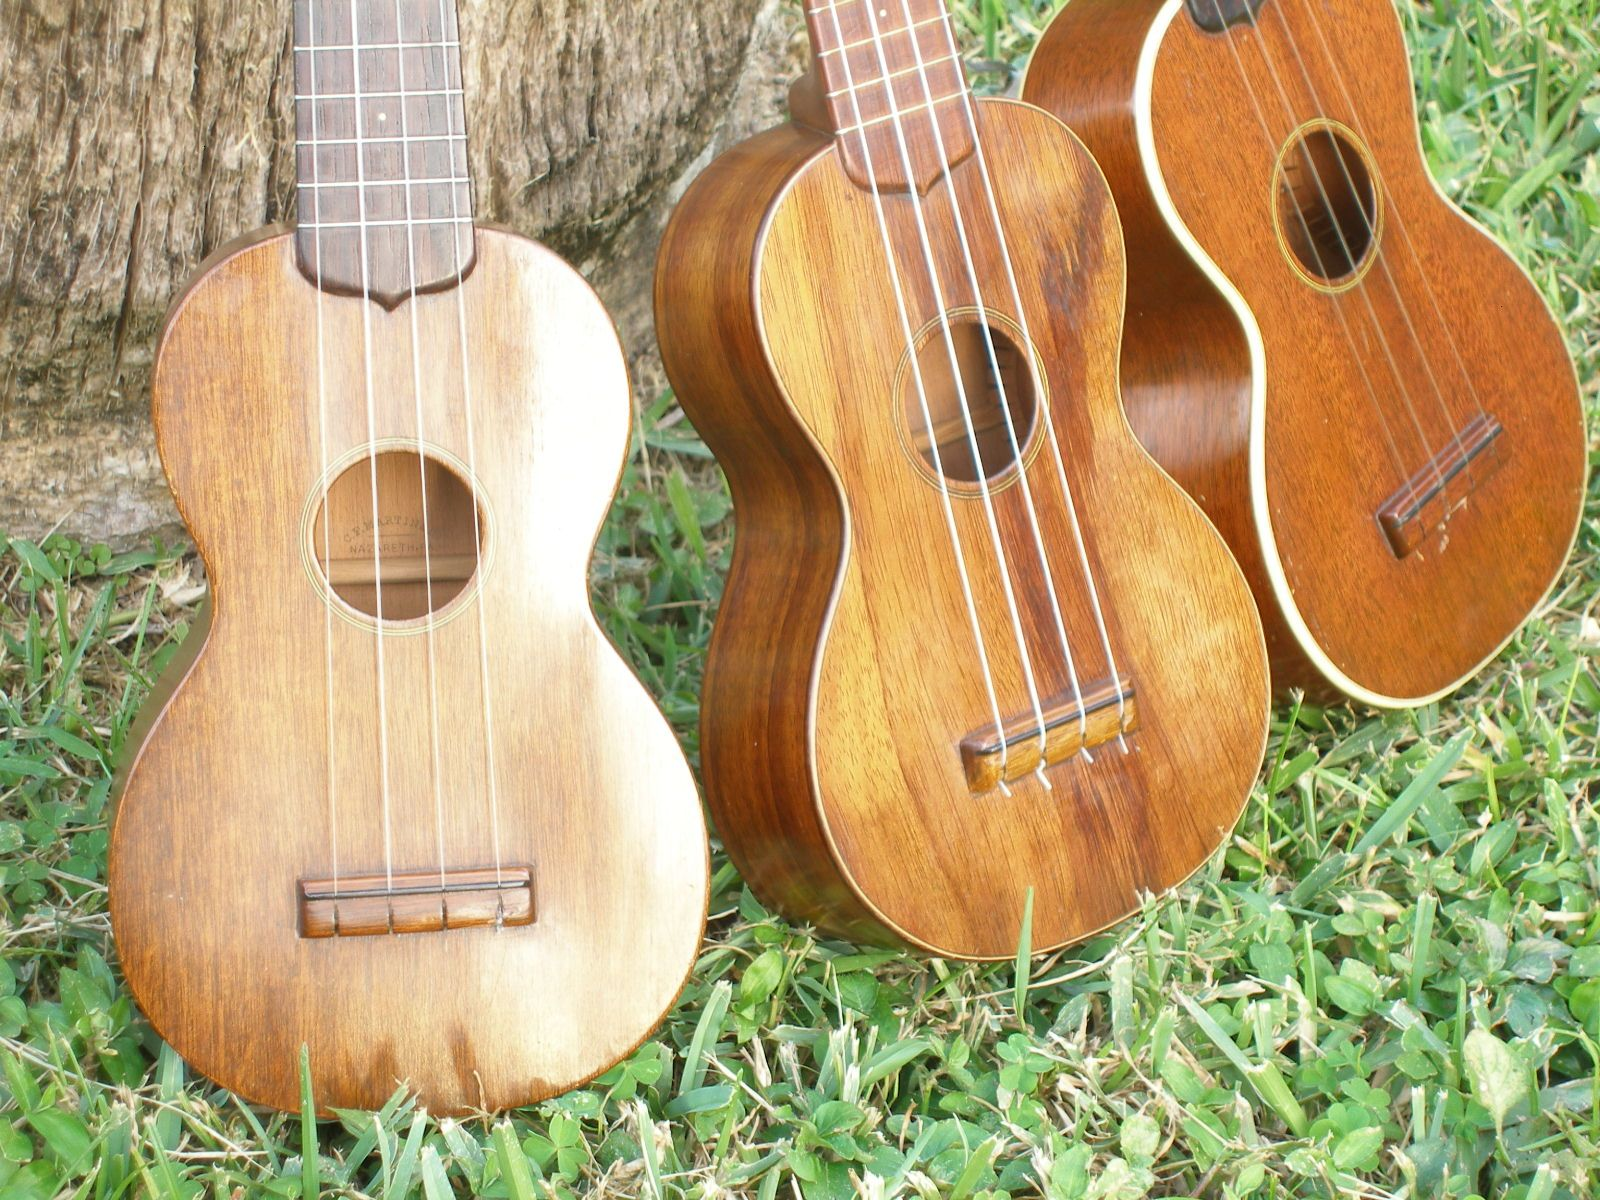 Different Ukulele Wood Types